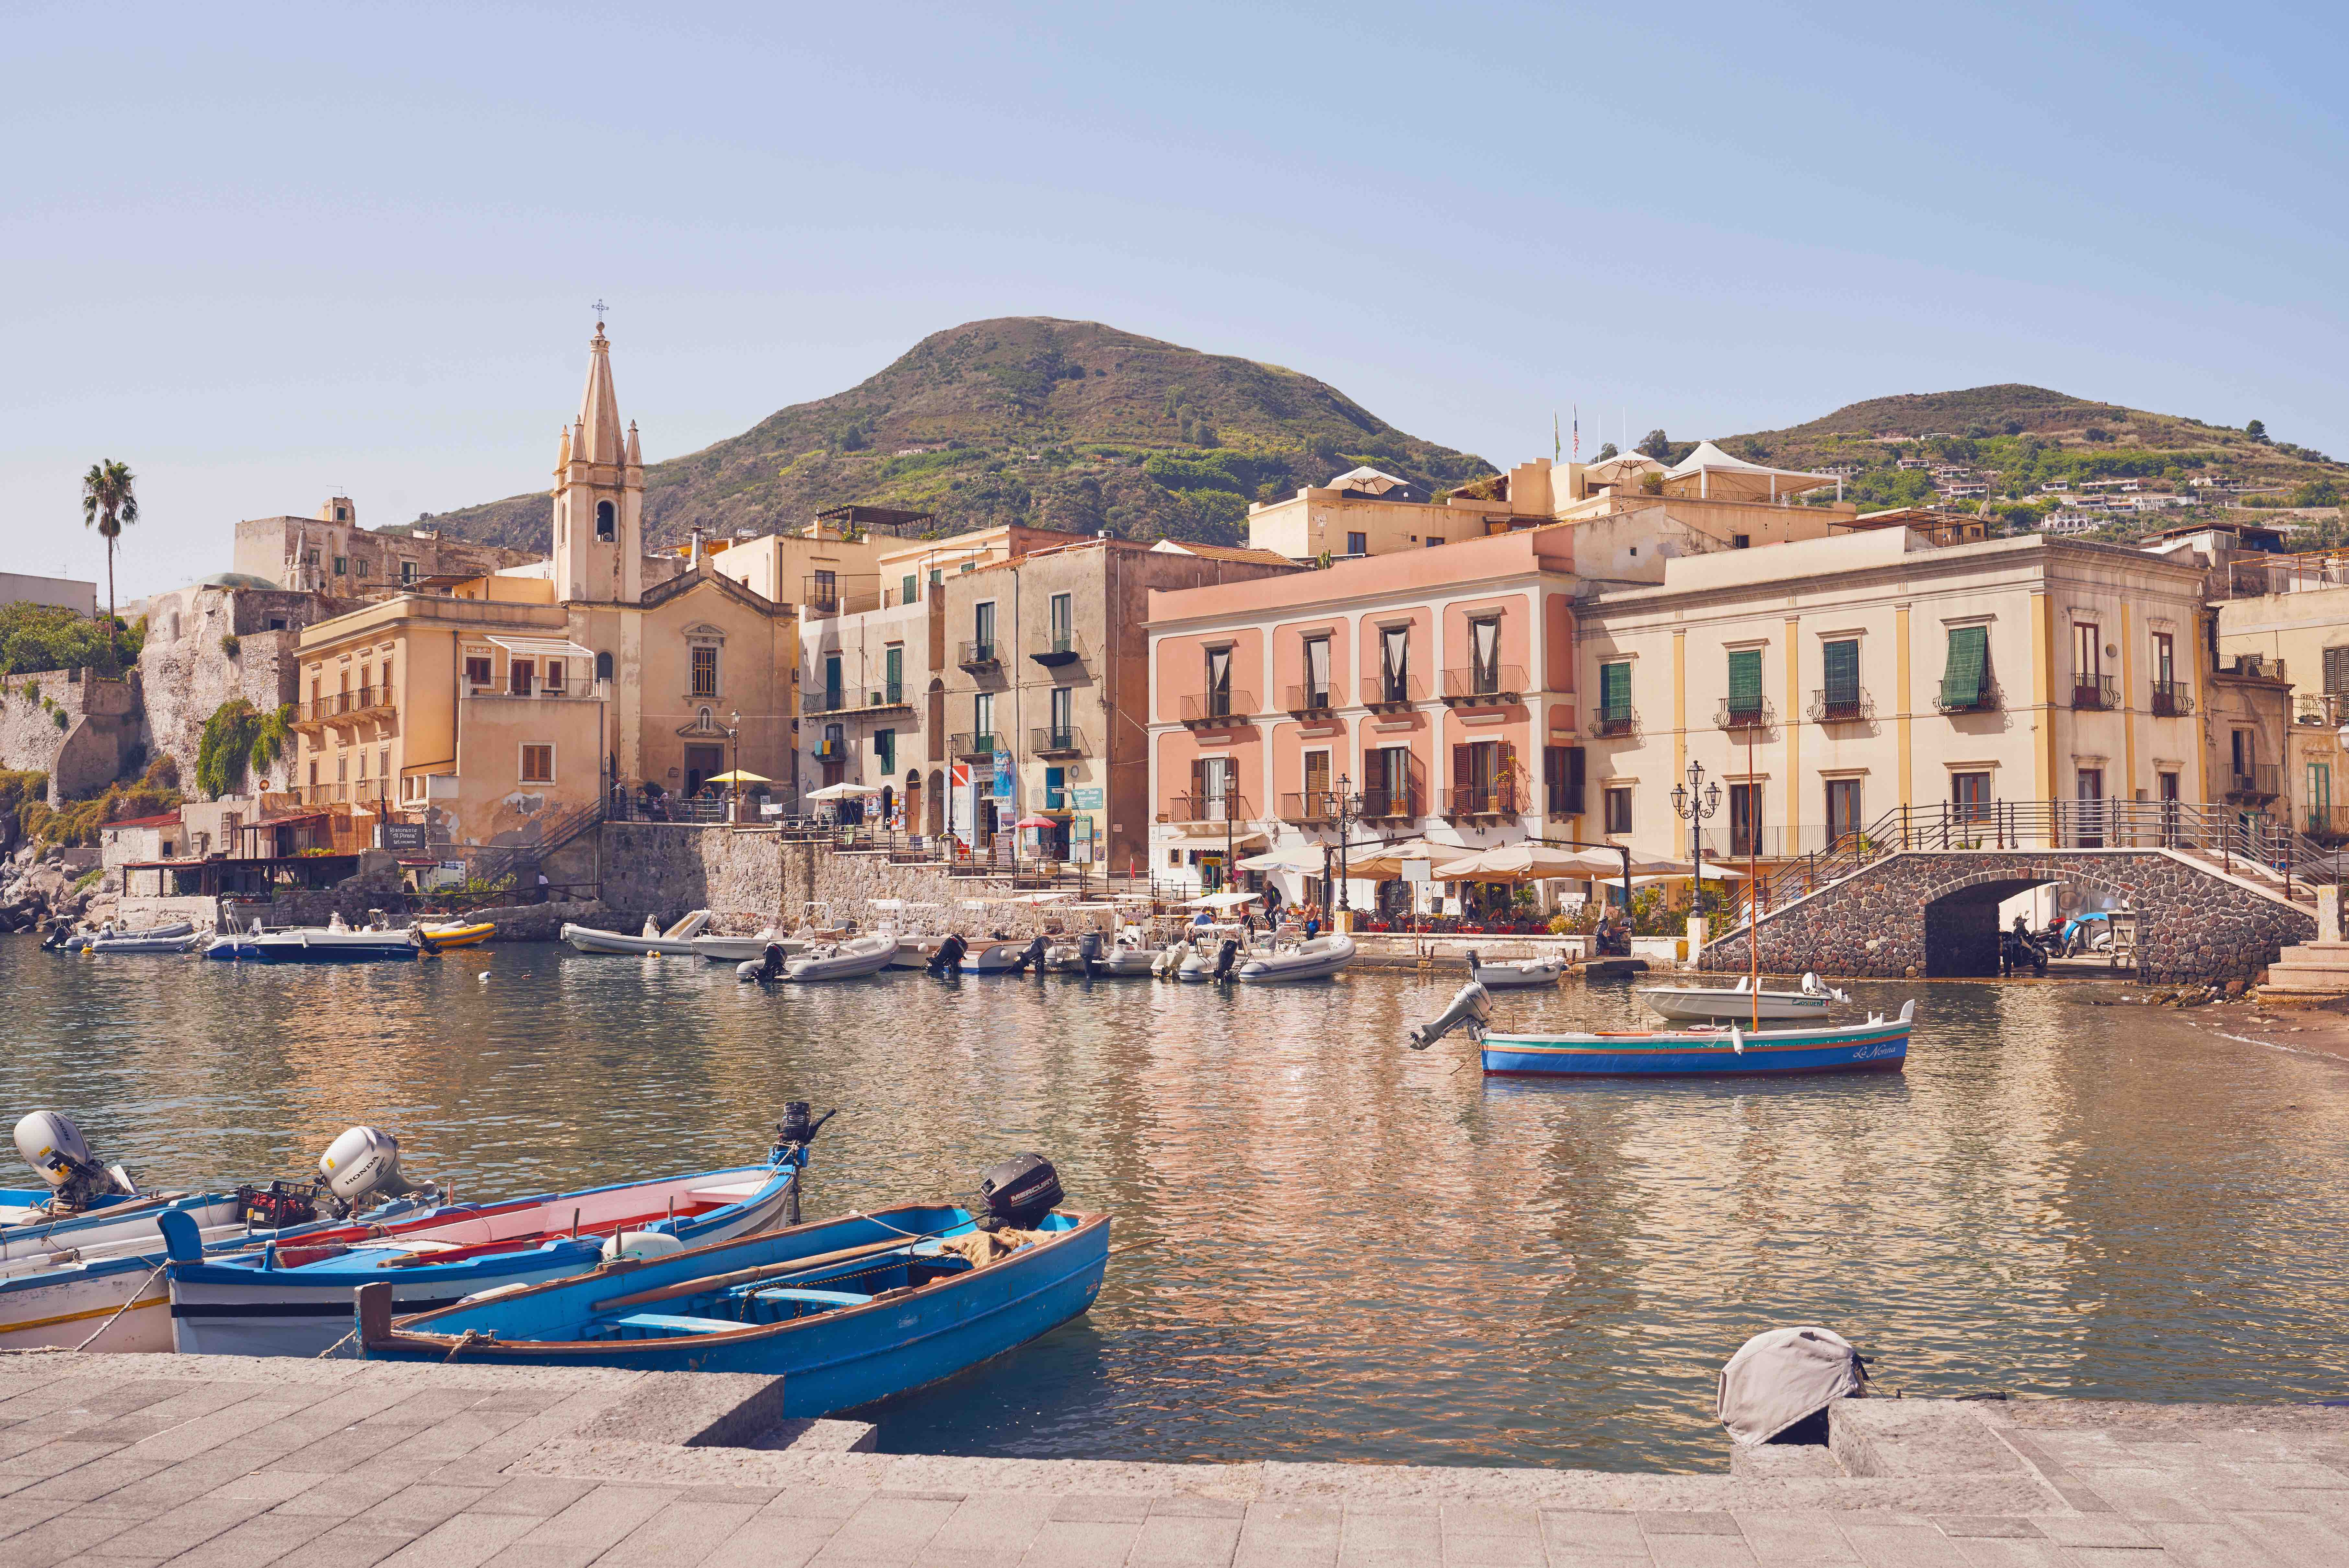 The iconic harbour of Lipari, one of the most underrated Aeolian Islands.